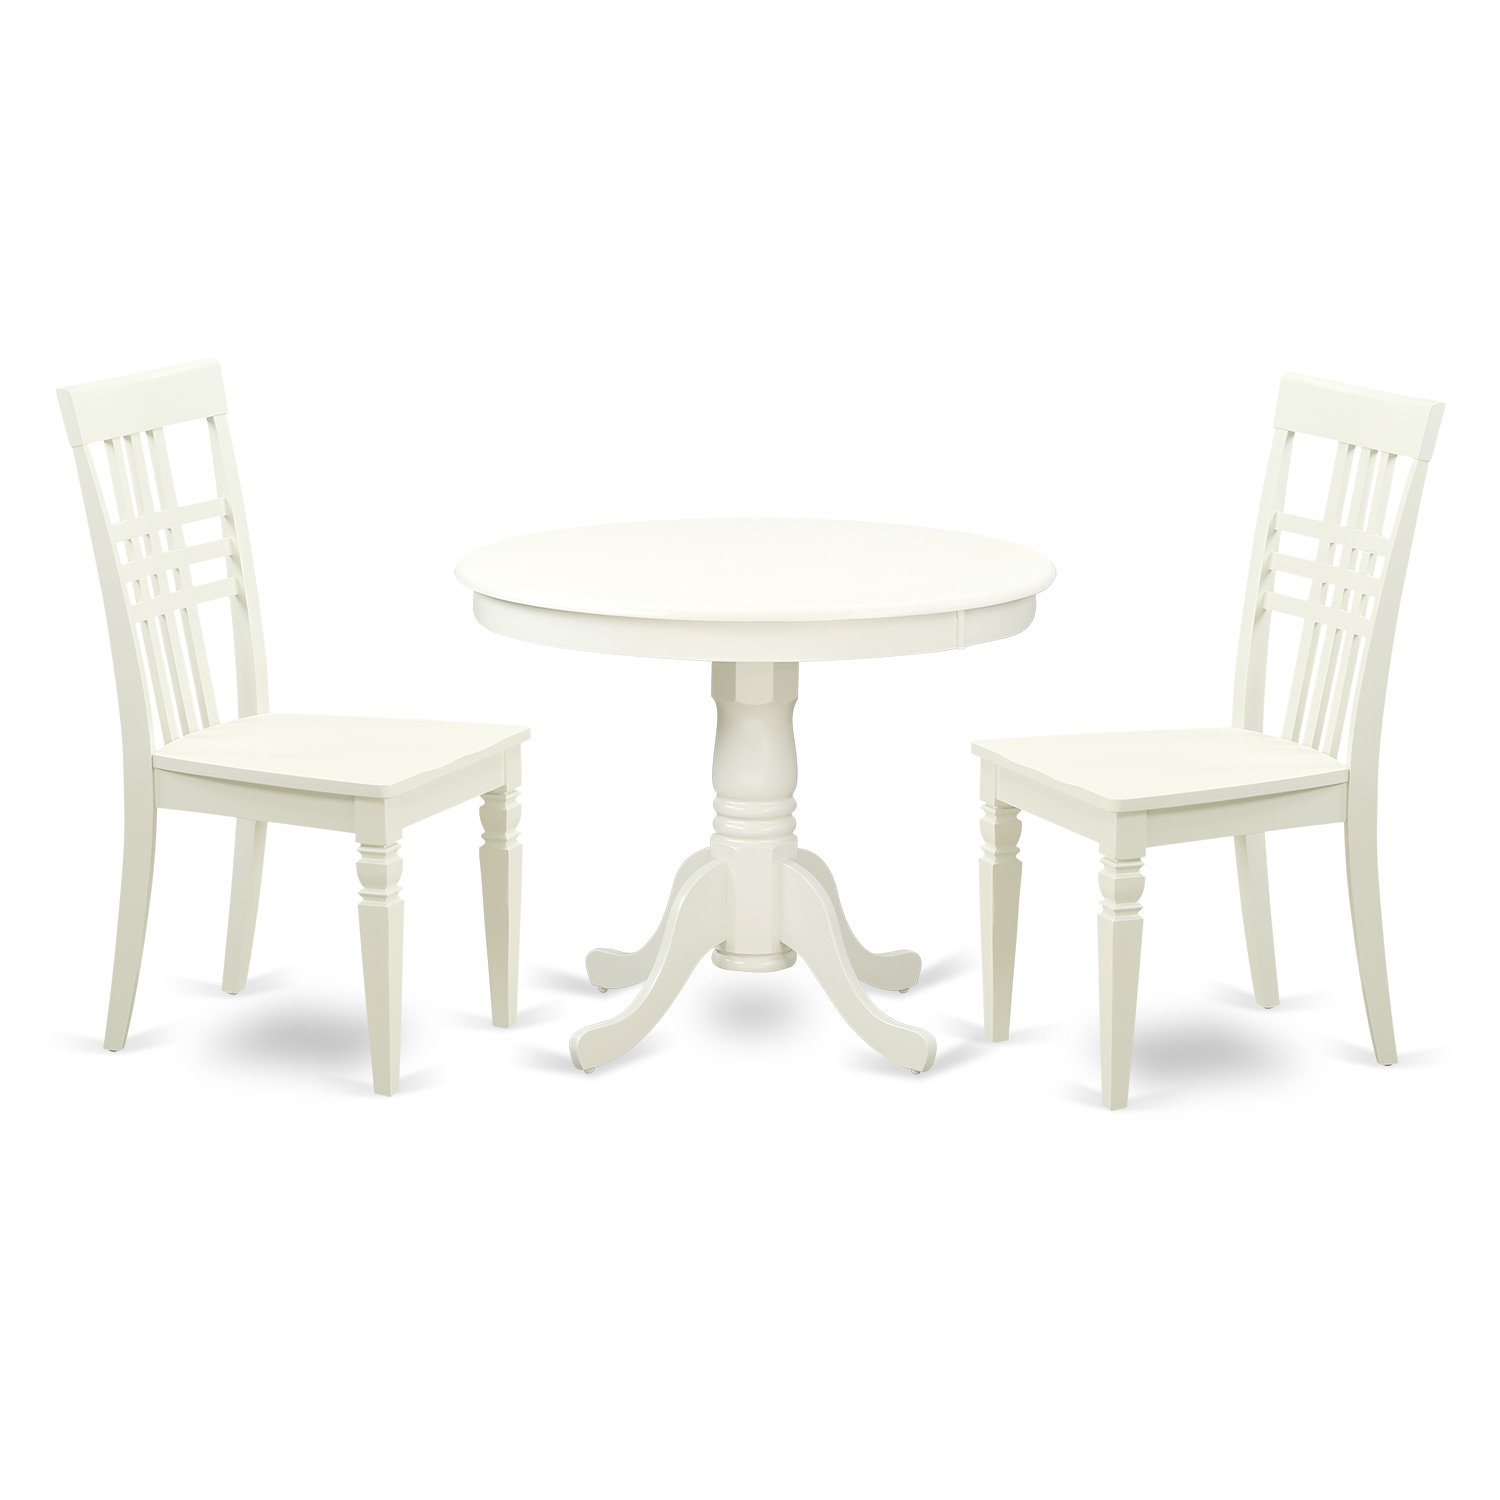 East West Furniture ANLG3-LWH-W 3 PC Set with 1 Kitchen Table & 2 Wood Kitchen Chairs Having A Rich Linen White Finish